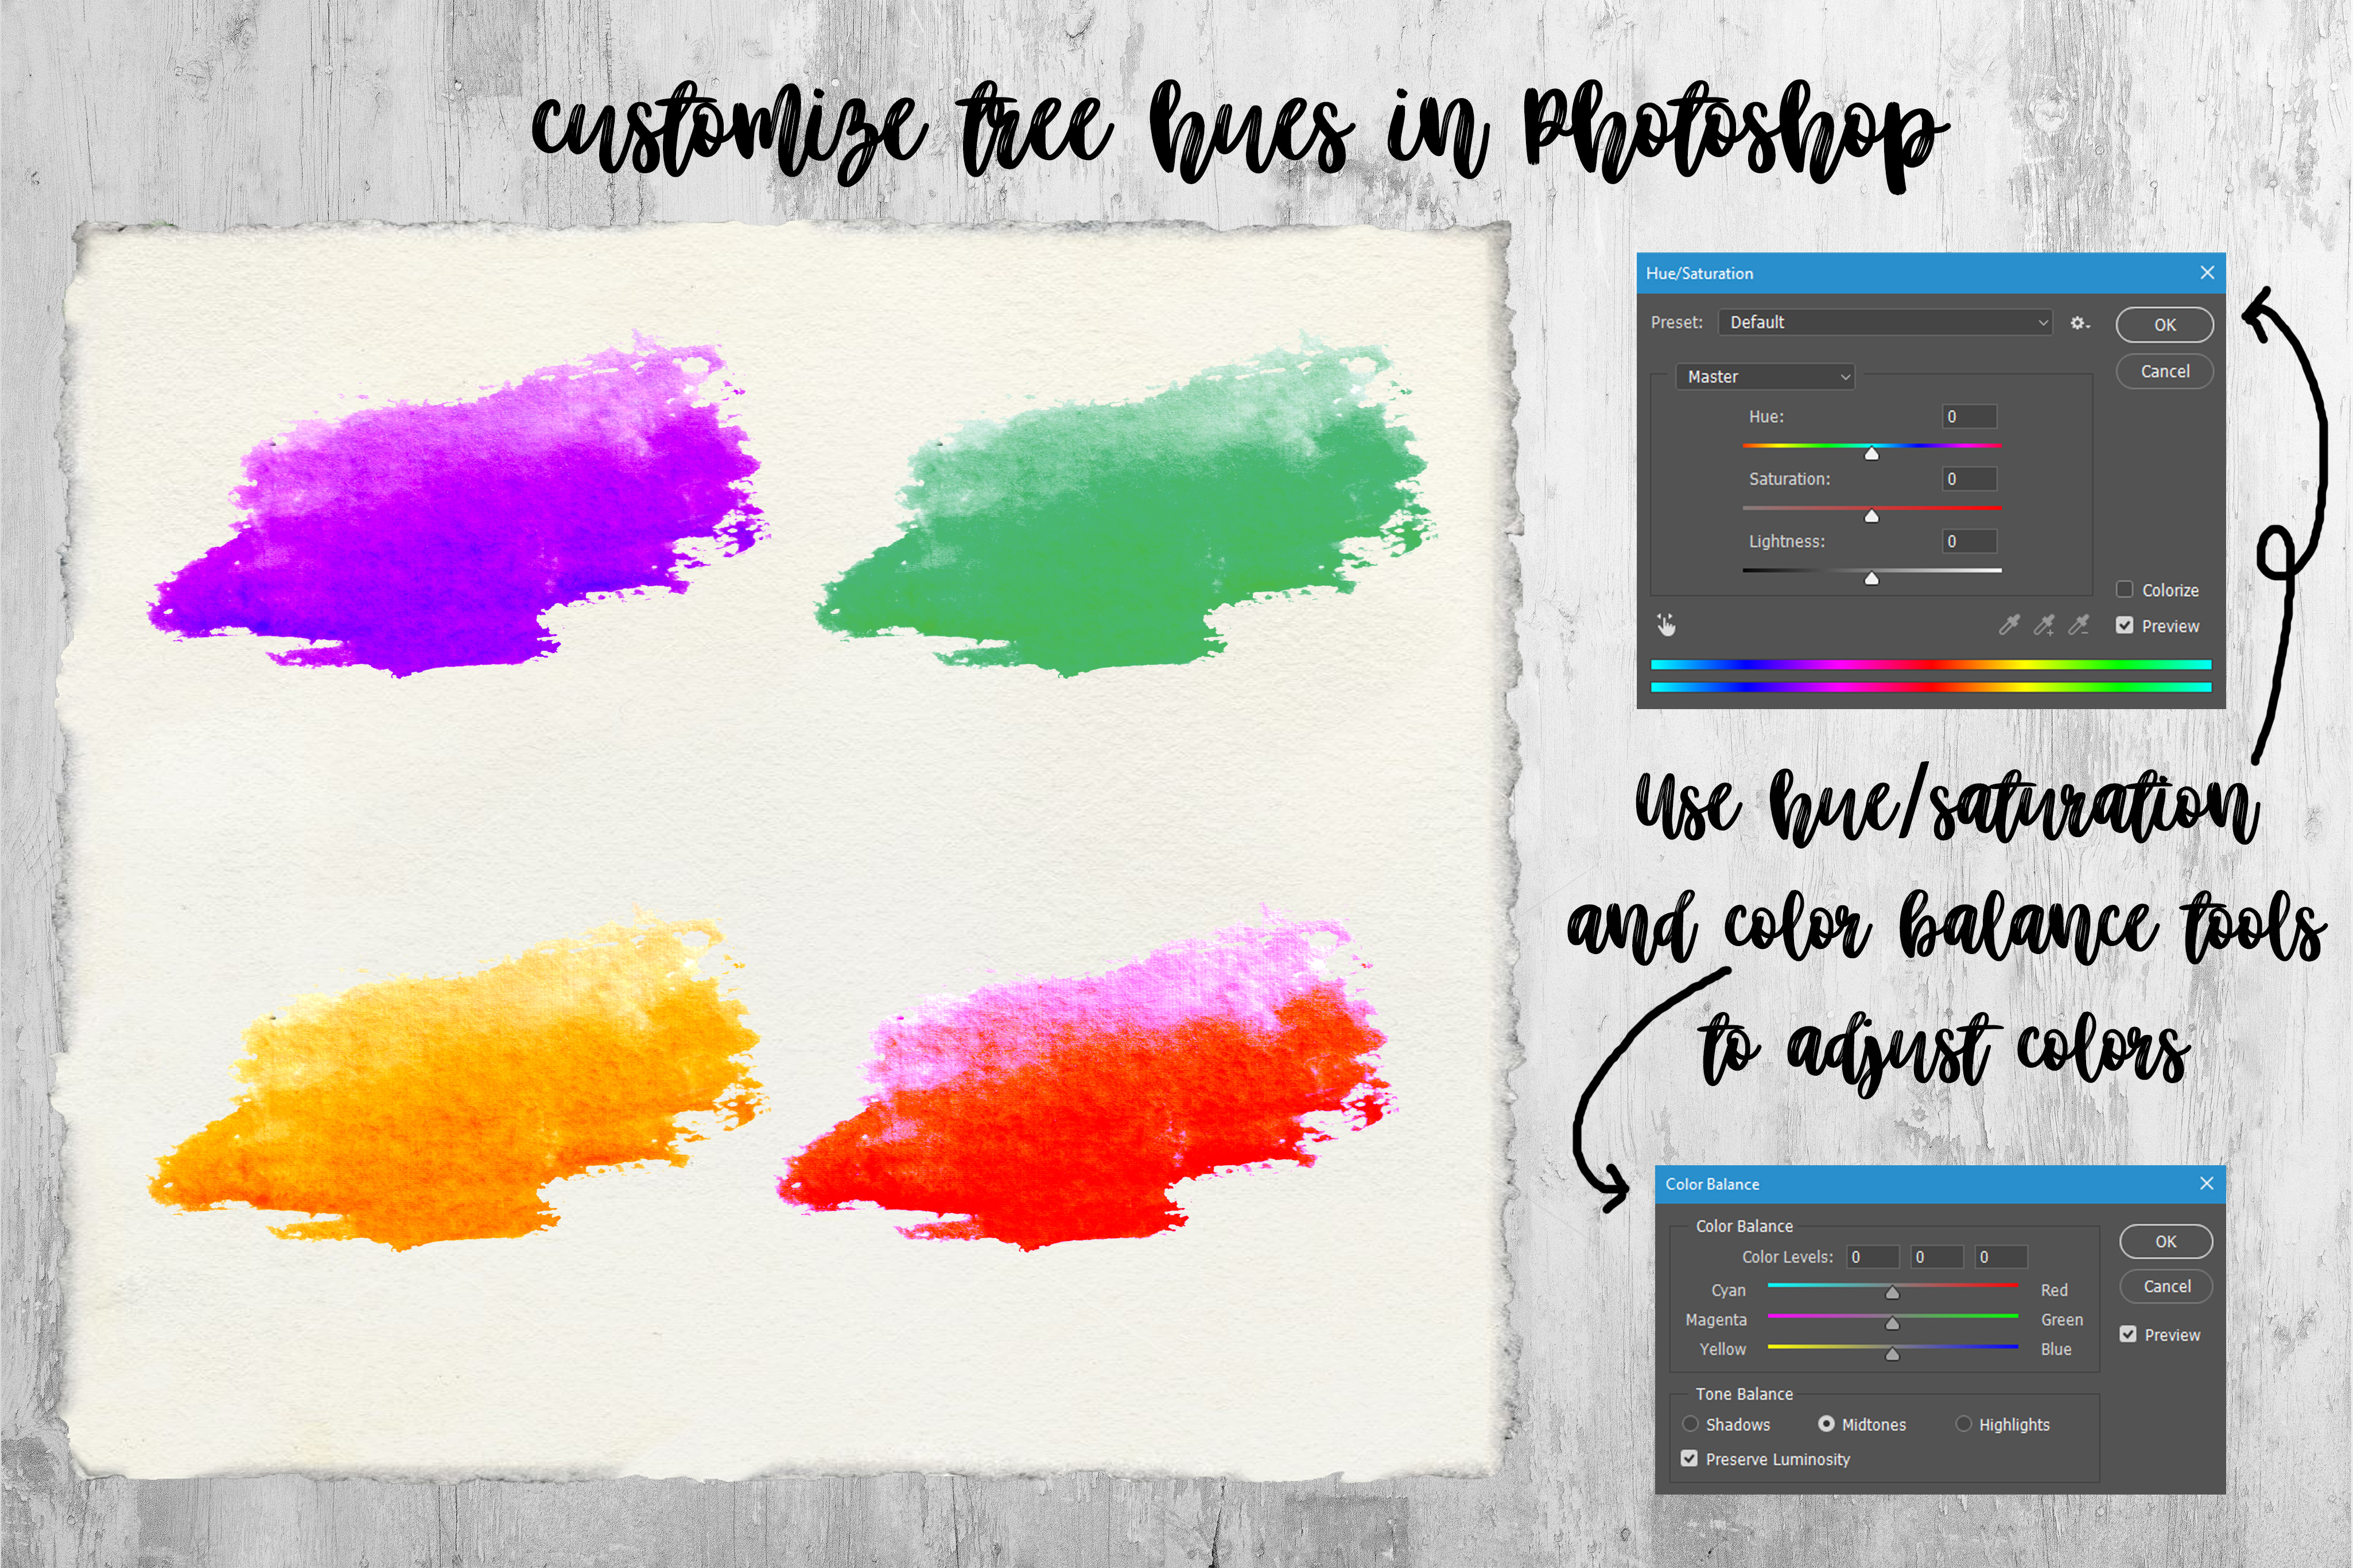 Watercolor Texture Pack Graphic Textures By tregubova.jul - Image 8